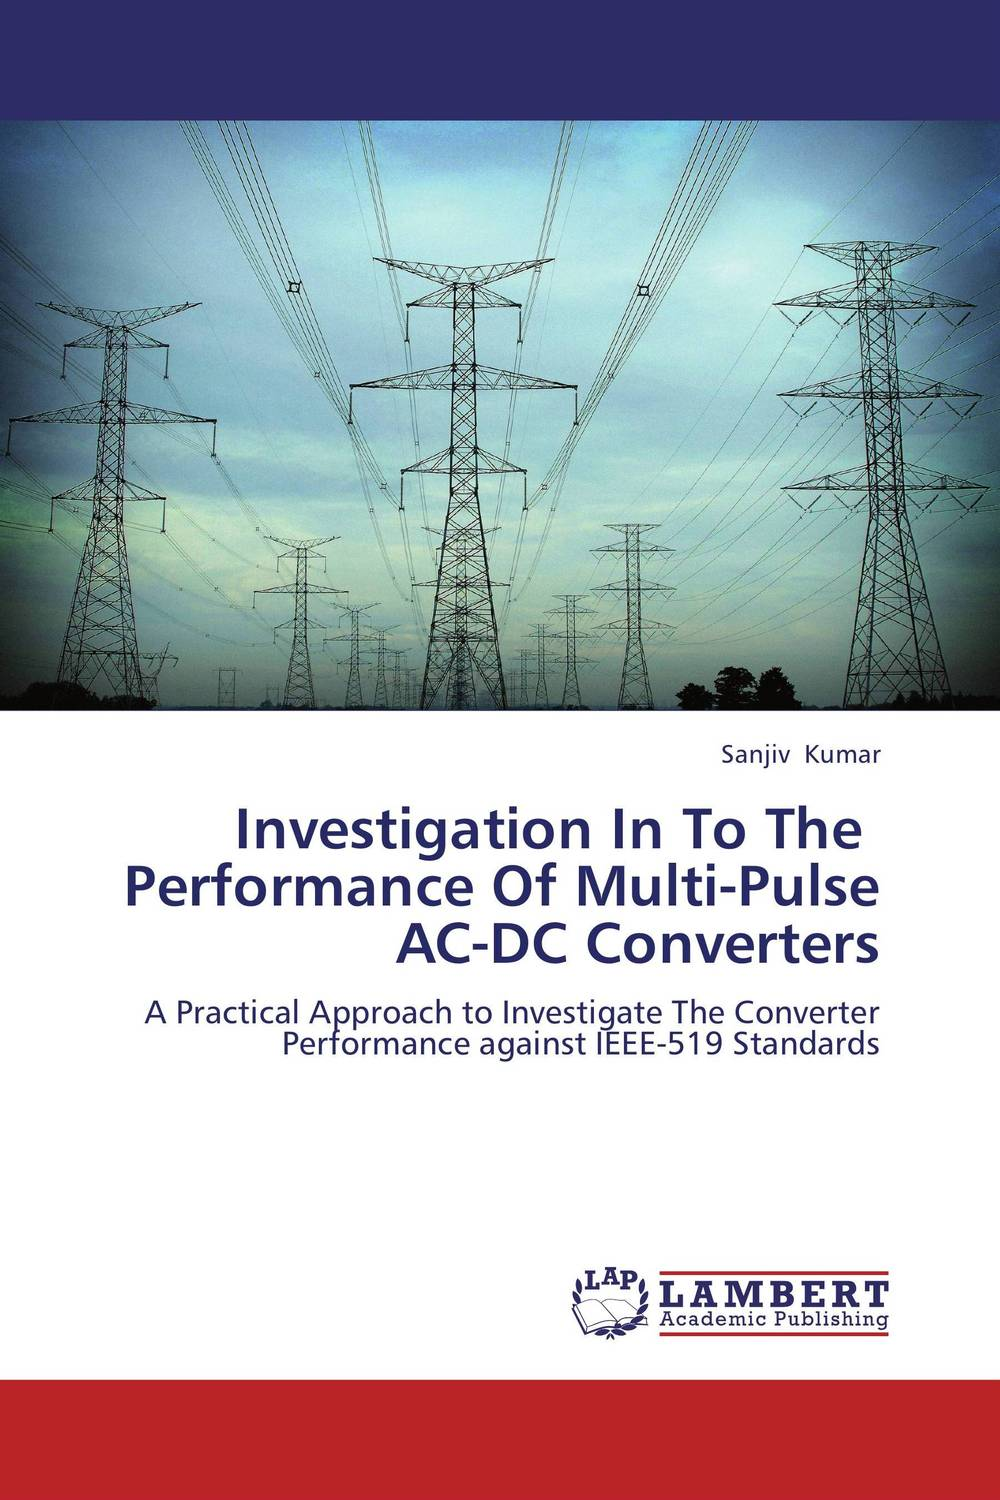 Investigation In To The Performance Of Multi-Pulse AC-DC Converters tom mcnichol ac dc the savage tale of the first standards war